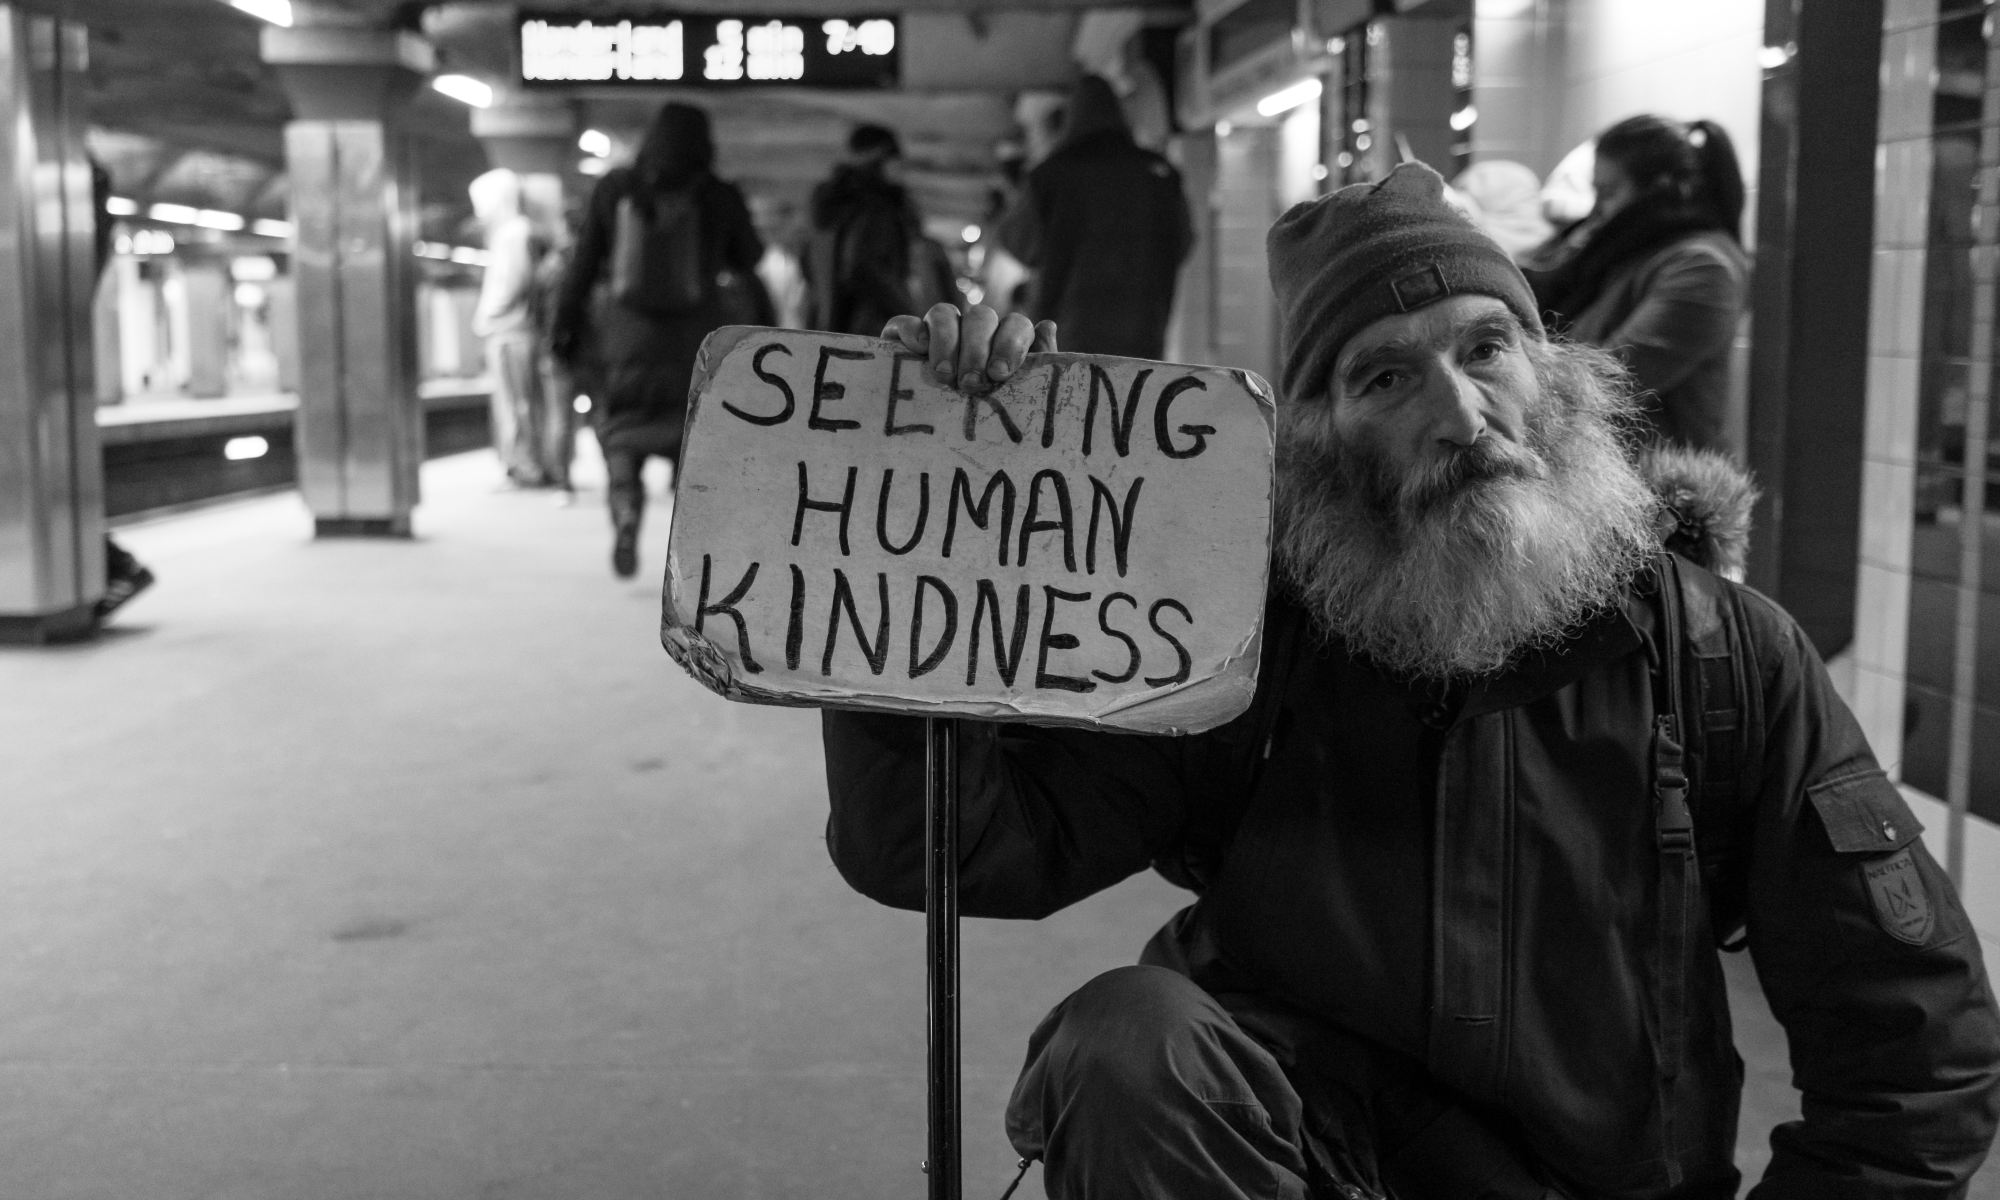 Homeless man in subway station holding card with seeking human kindness text